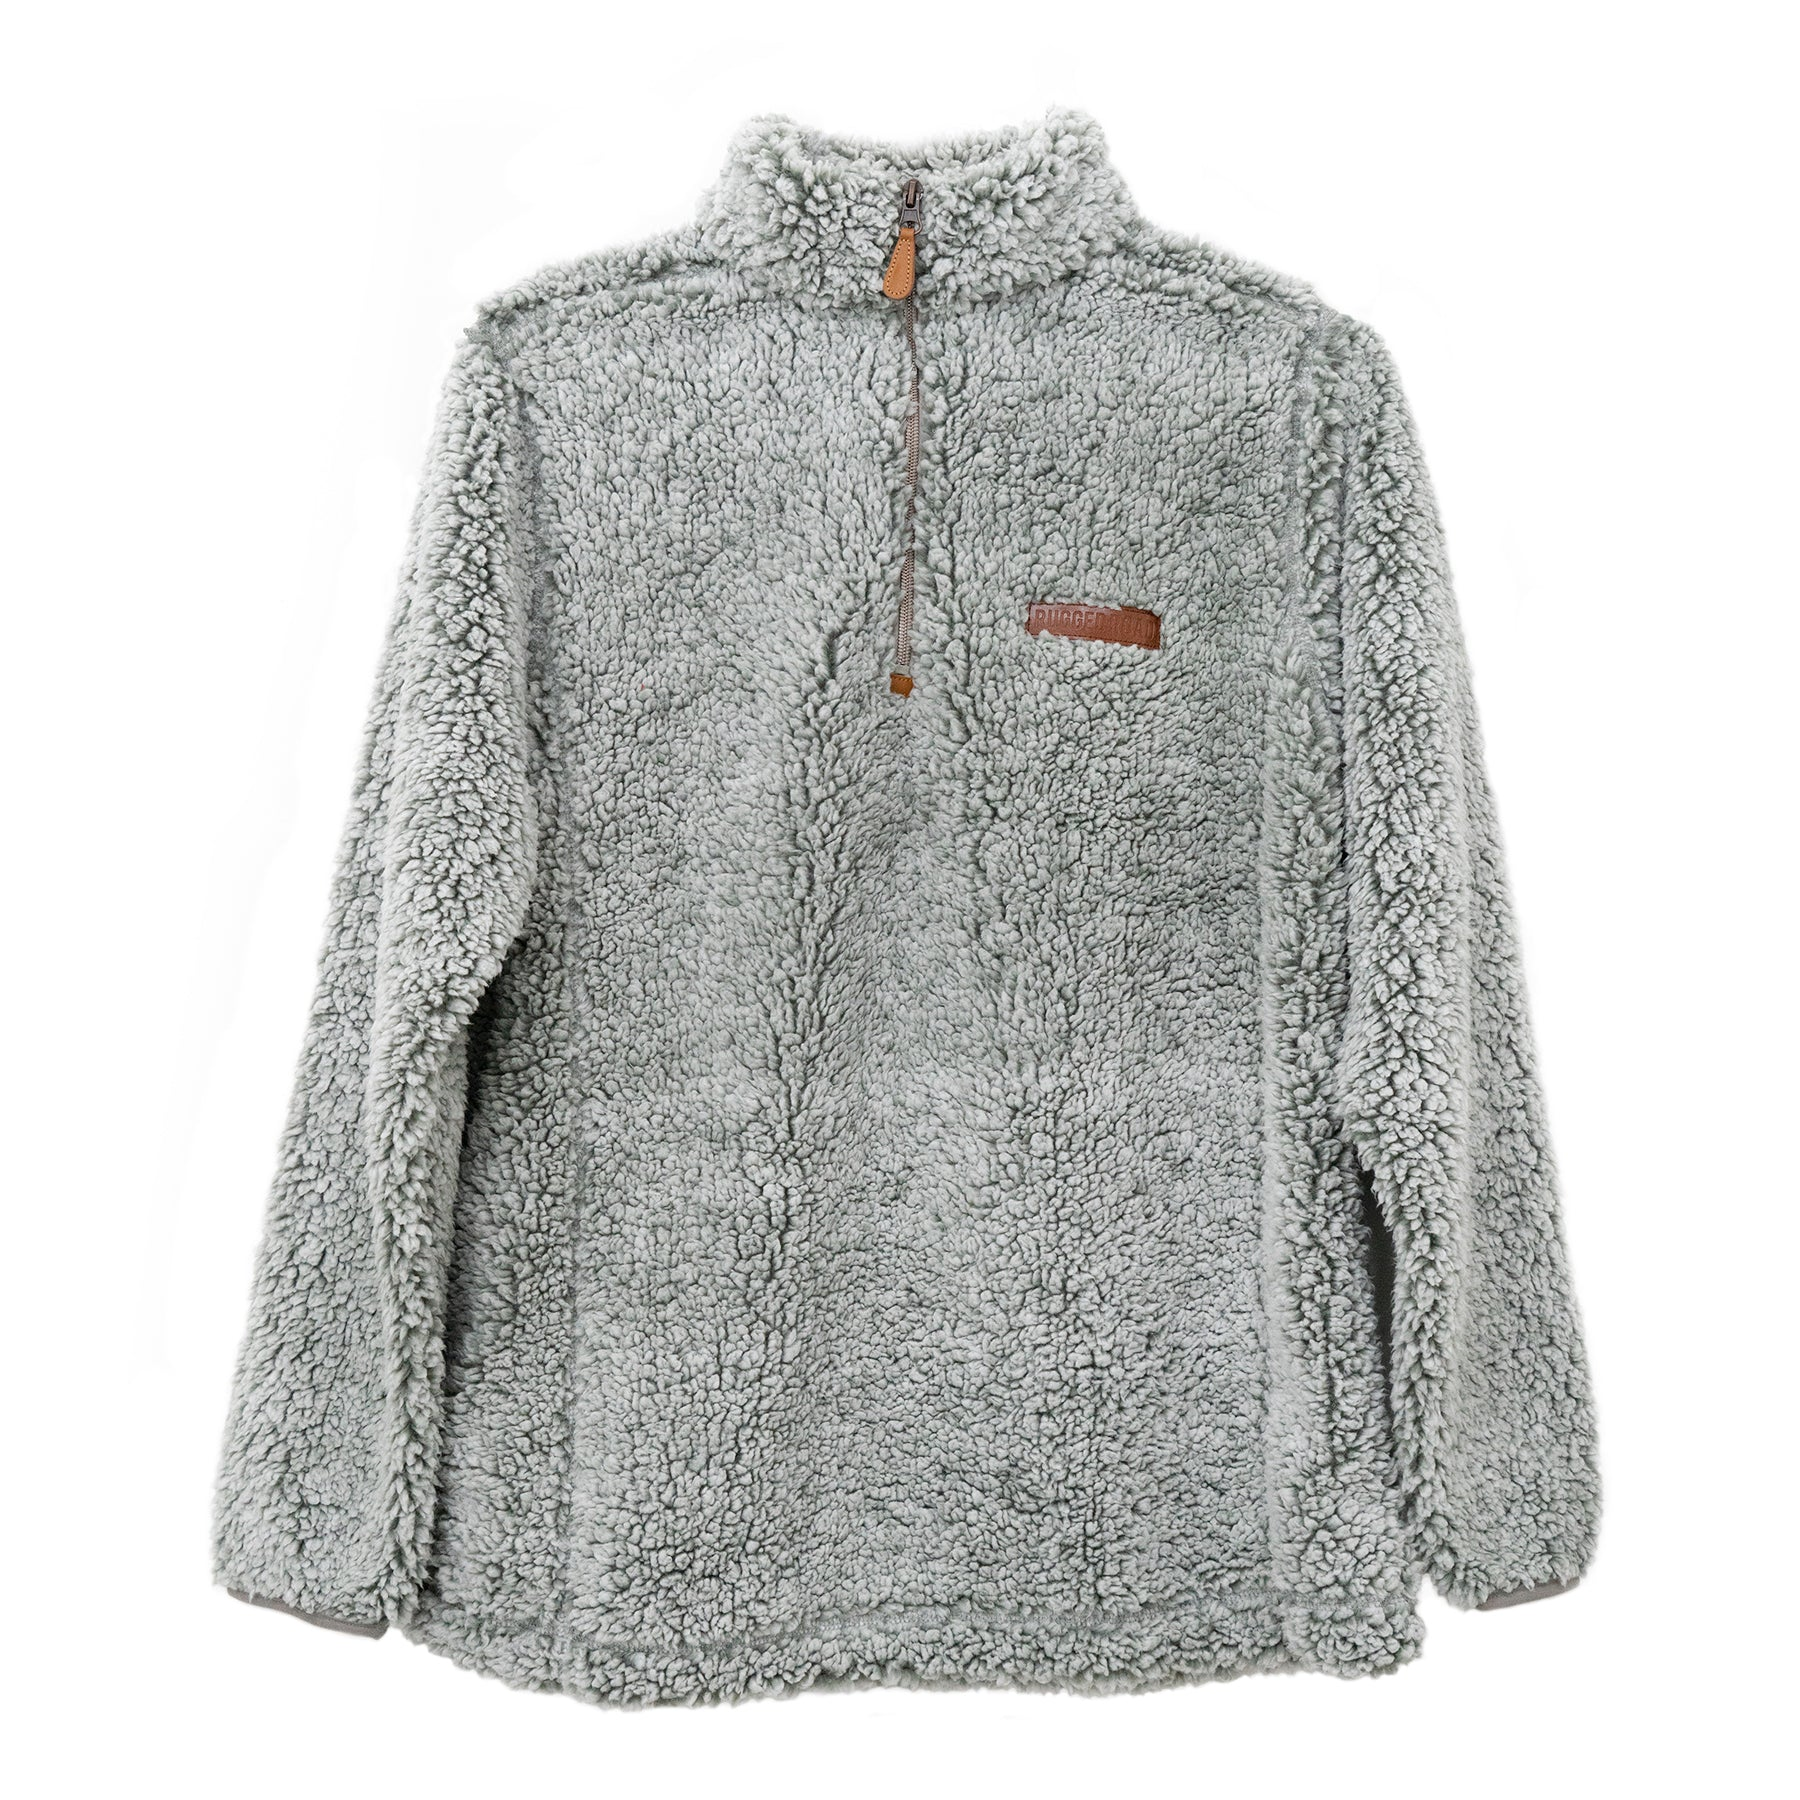 Bombogenesis Winter Pullover | White Smoke